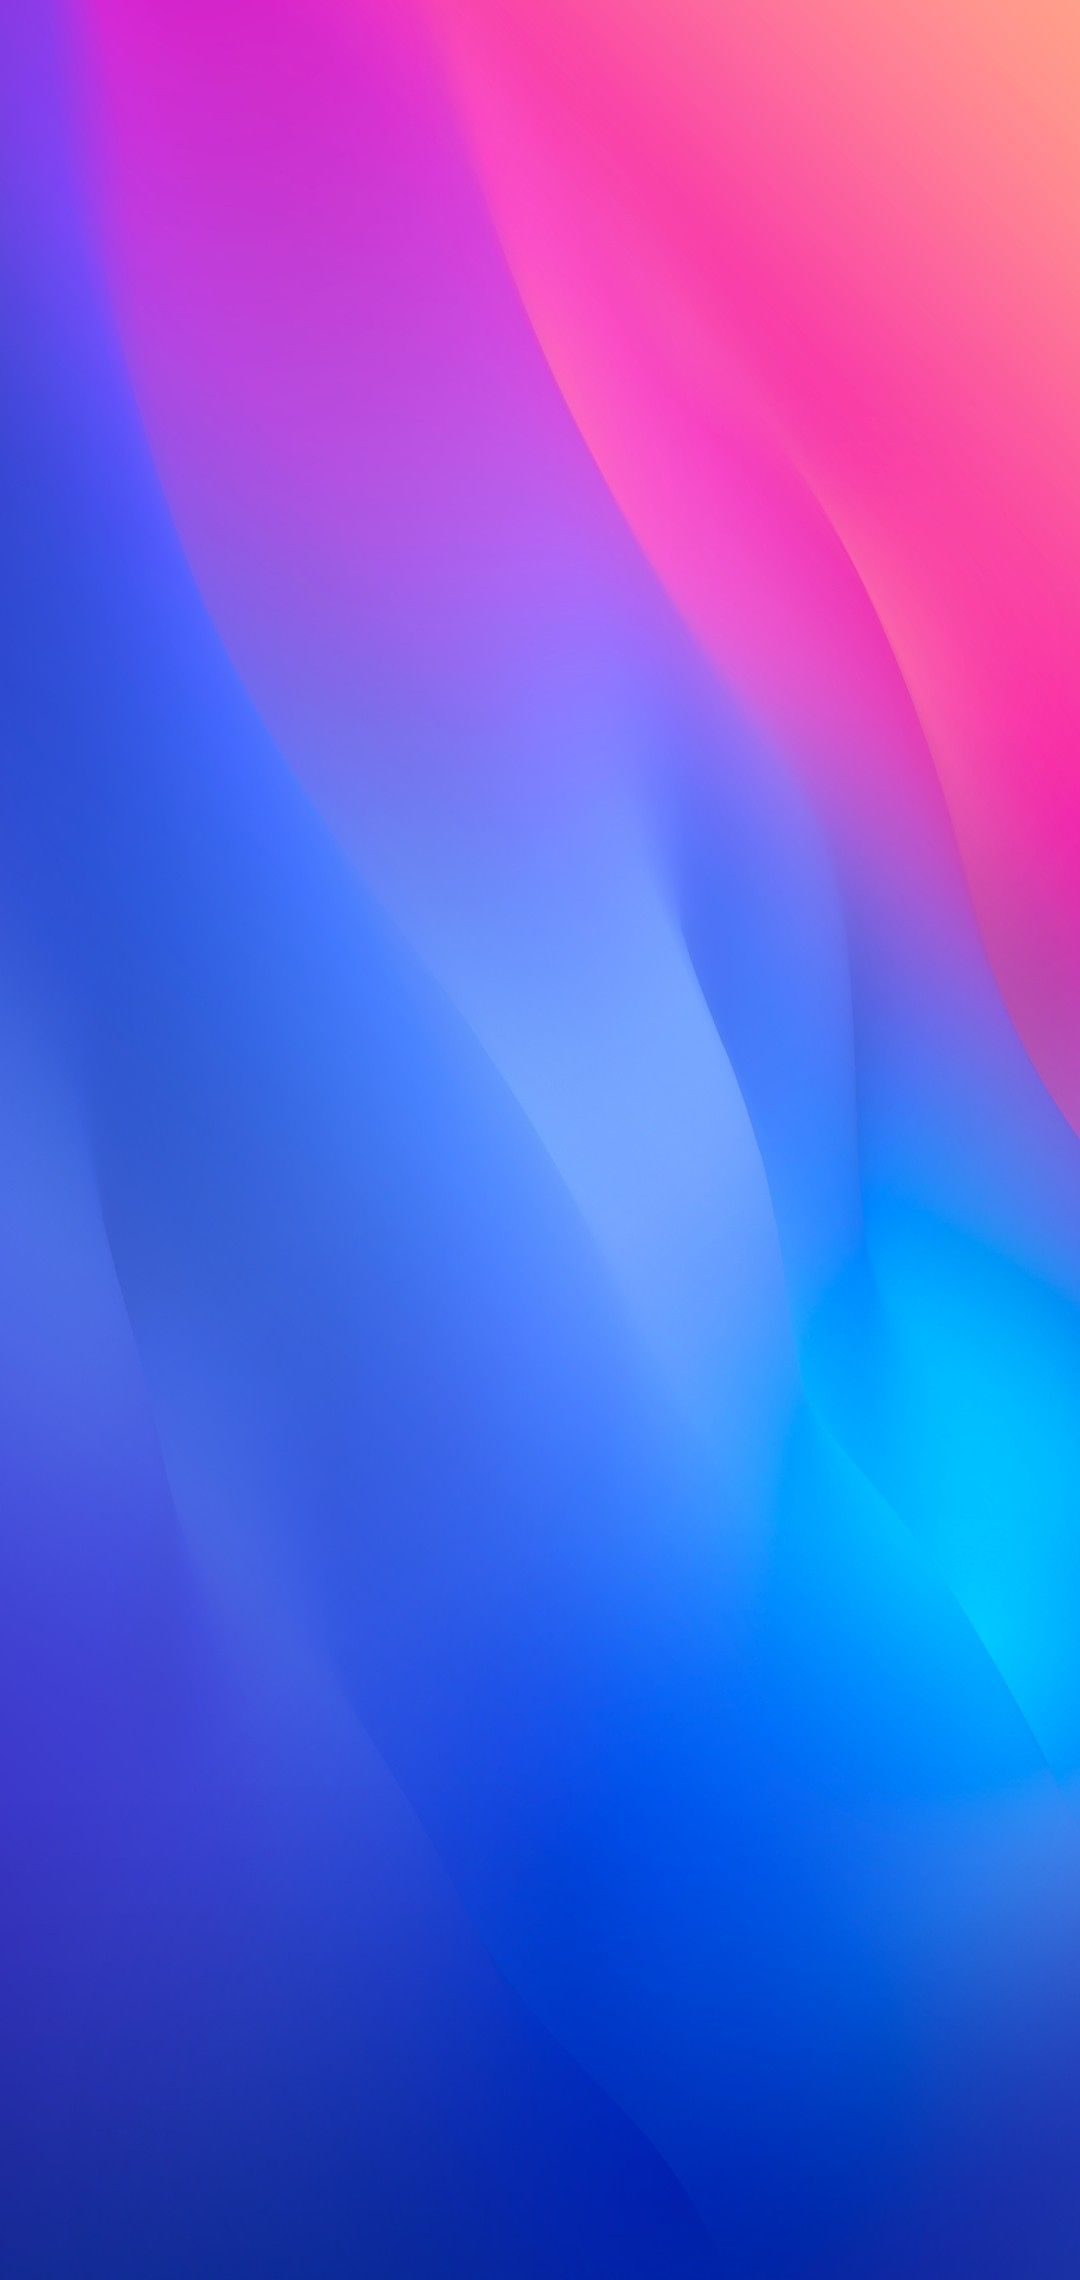 Ios 12 Iphone X Blue Pink Clean Simple Abstract Apple Wallpaper Iphone 8 Clean Beauty Pink Wallpaper Iphone Iphone Background Iphone Wallpaper Ios